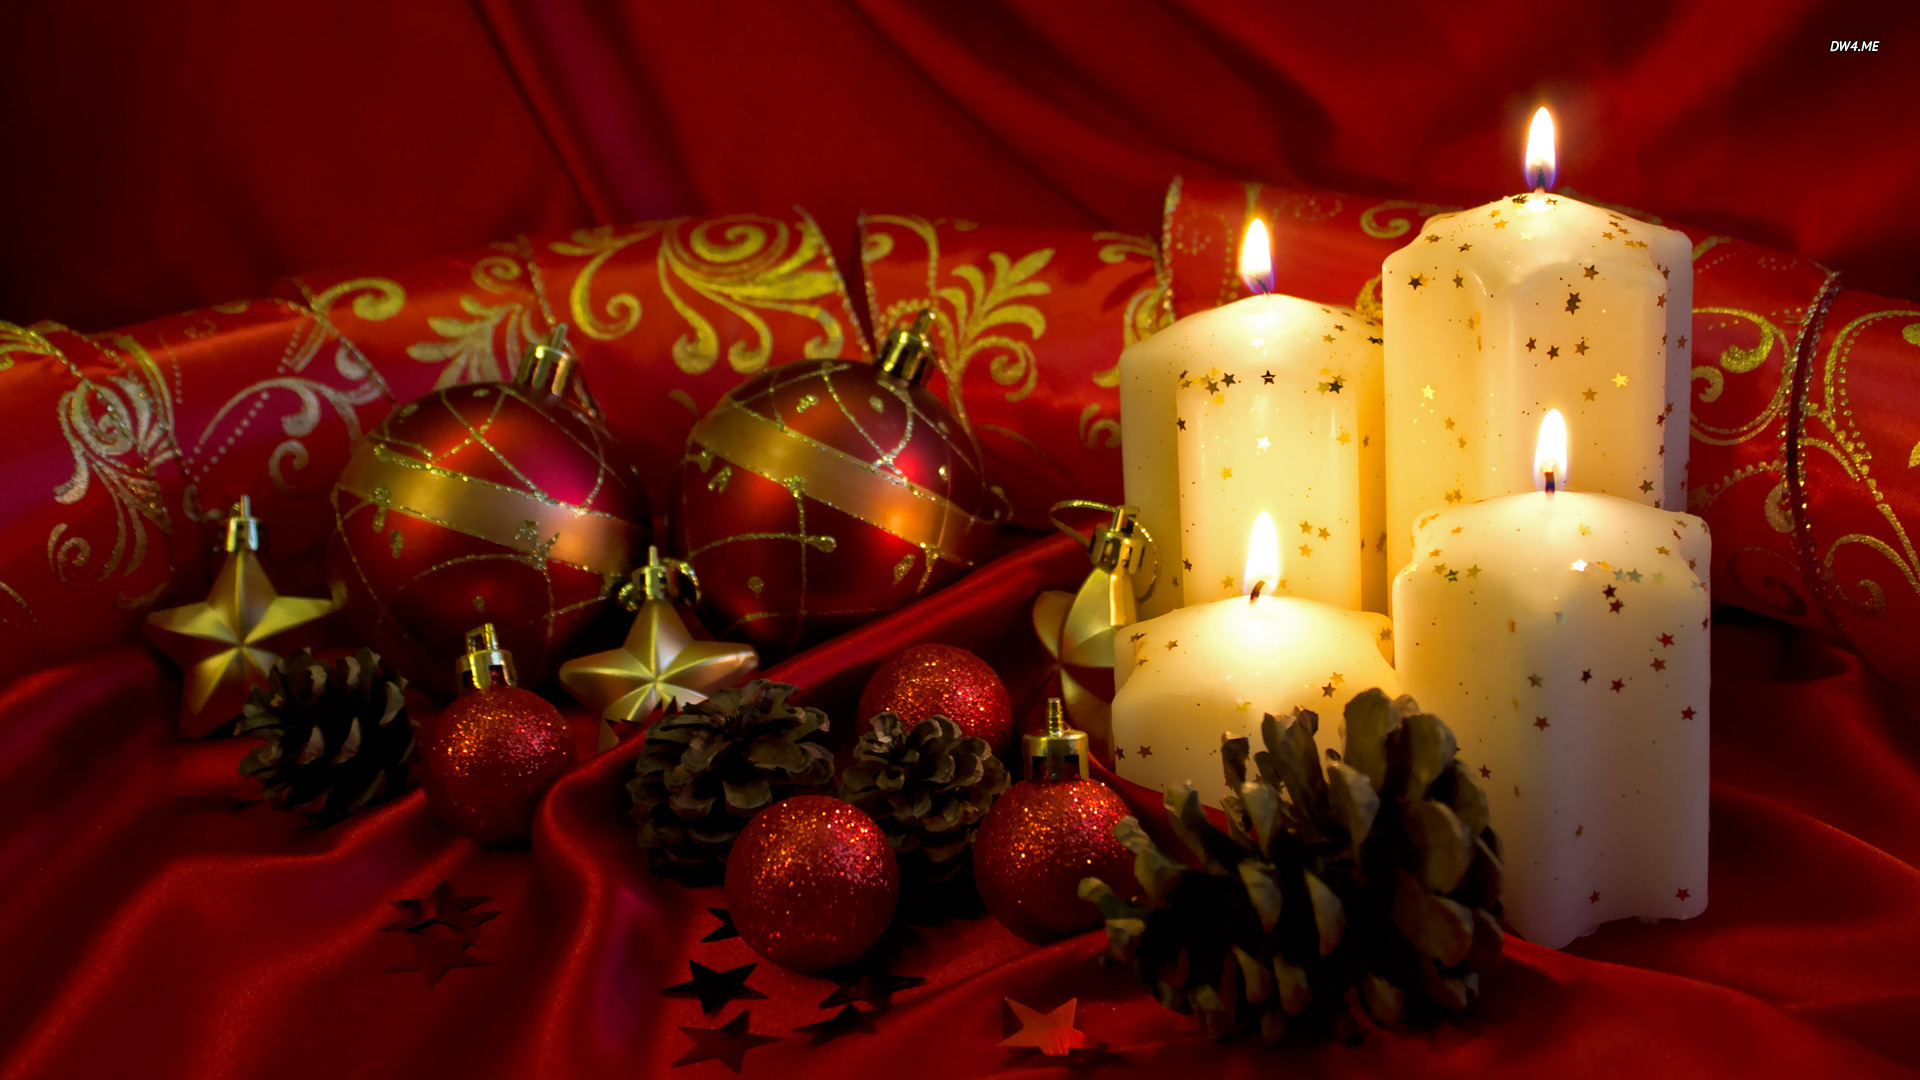 Christmas decorations wallpaper   Photography wallpapers 1920x1080